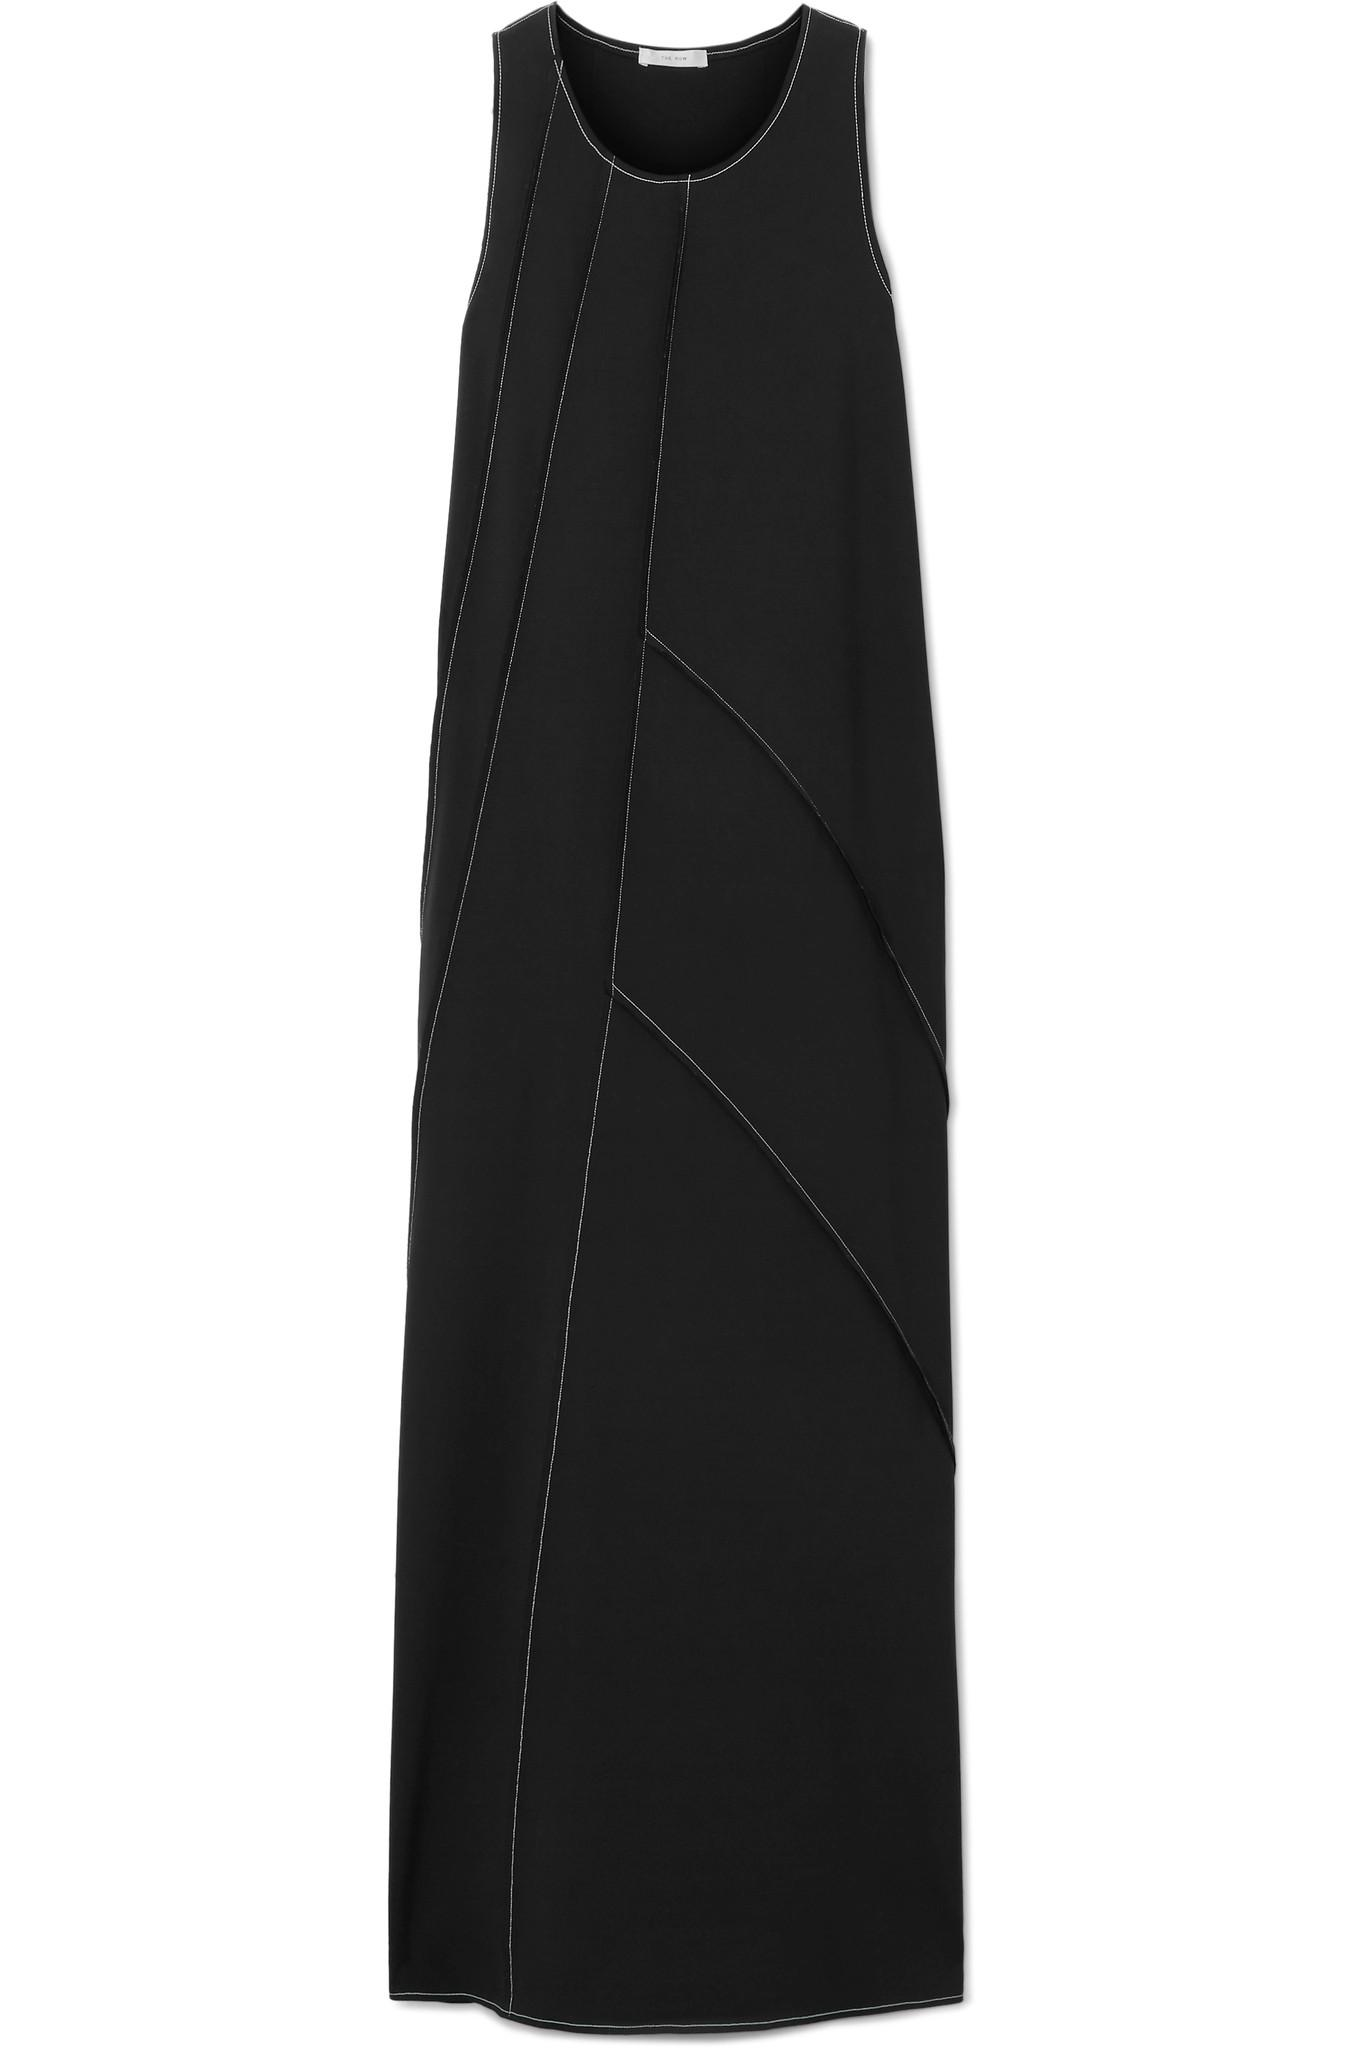 Didi Paneled Stretch-cady Maxi Dress - Black The Row Buy Online Authentic Online Cheapest  Buy Cheap 100% Original RIic8KWd8O